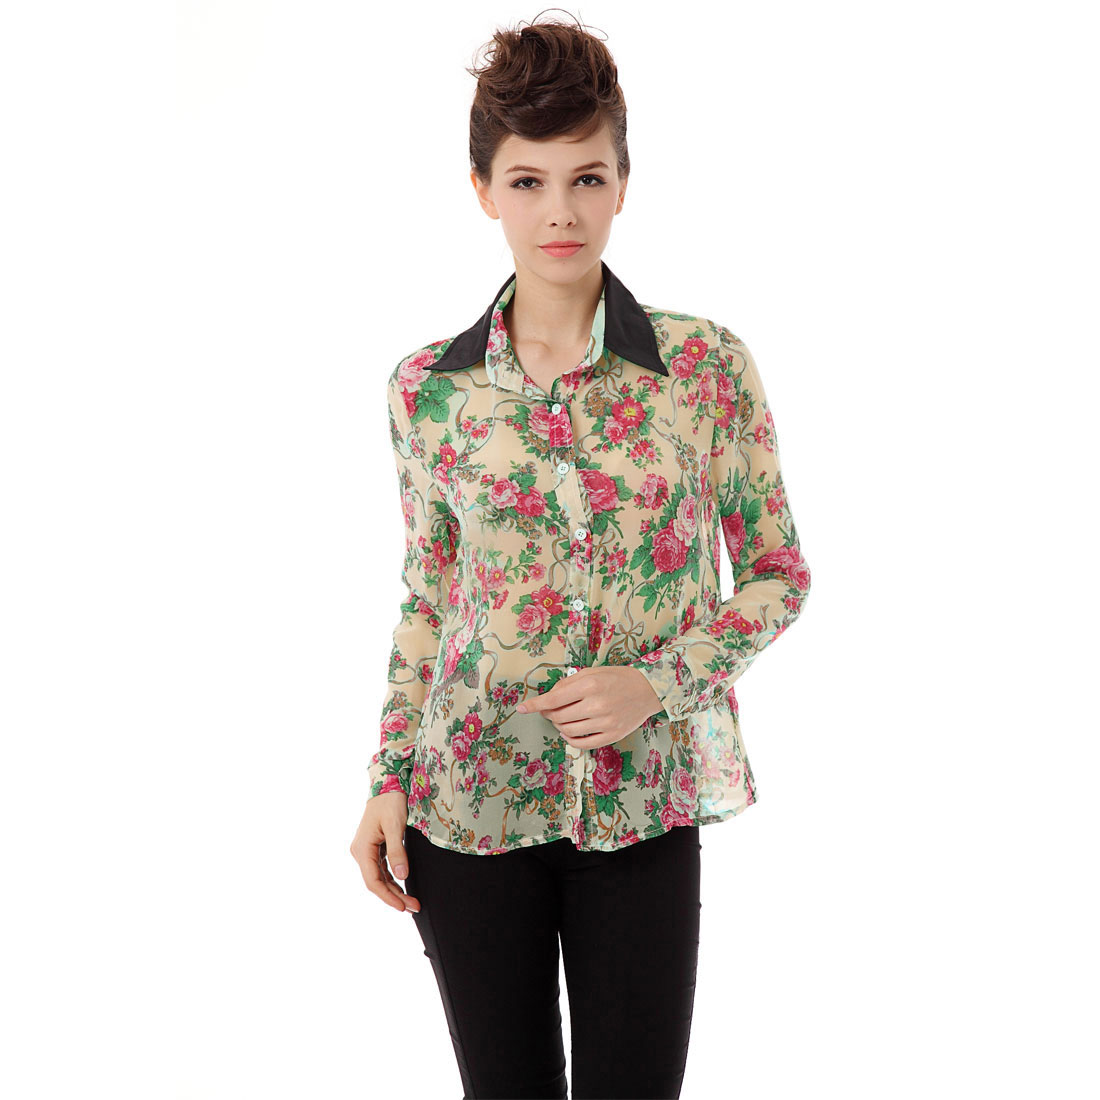 Stylish Flower Pattern Beige Button Down Shirt S for Lady